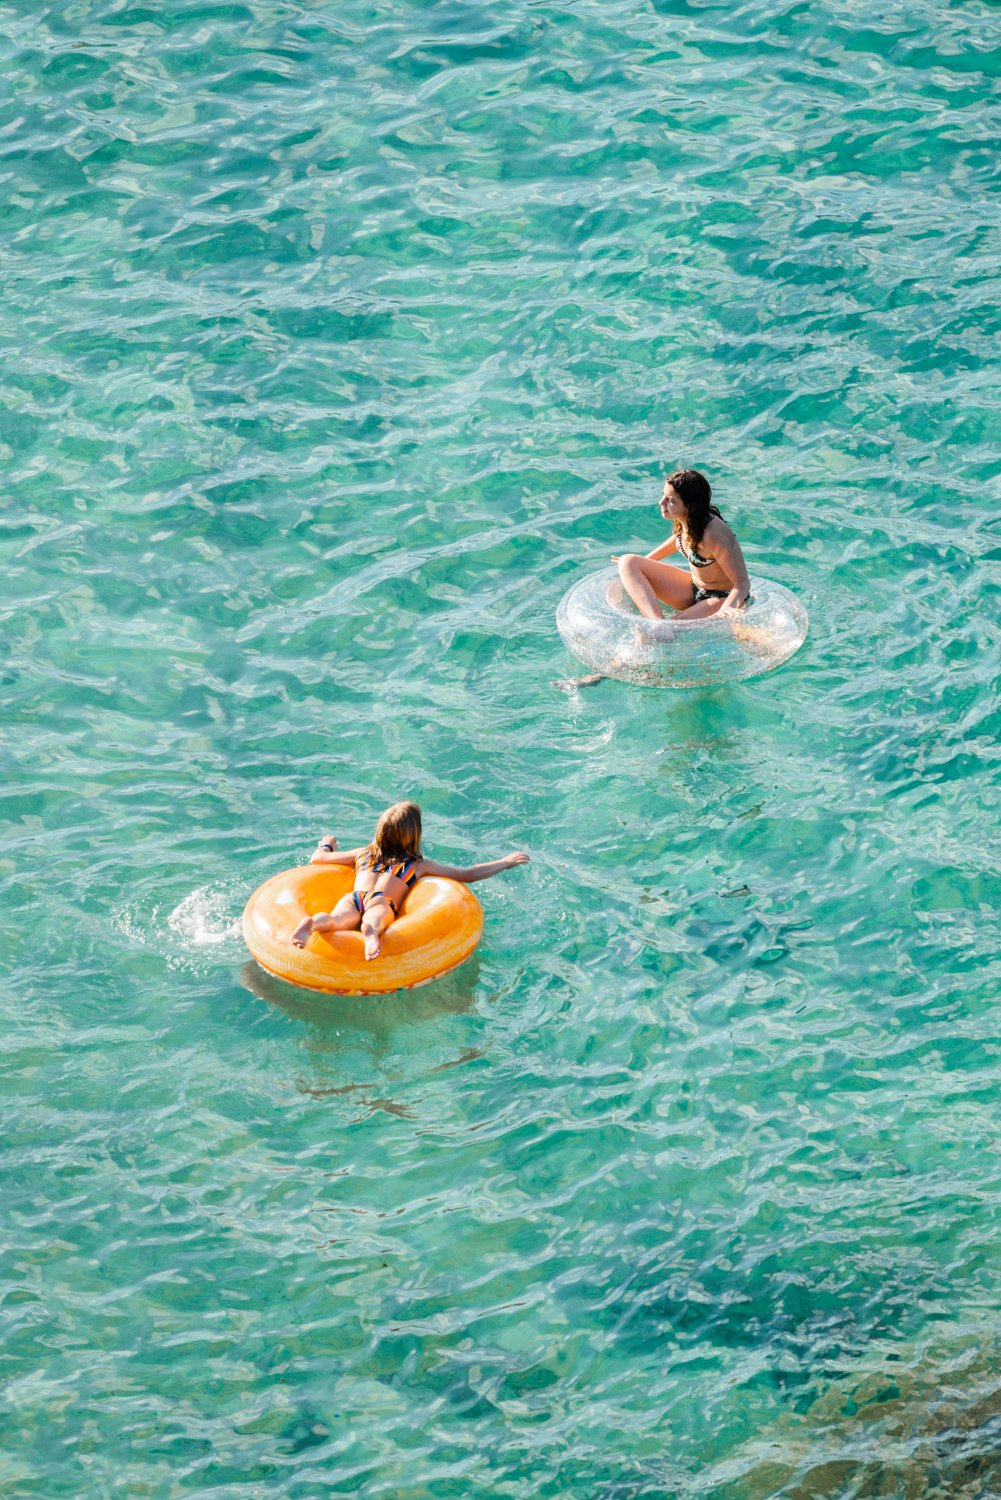 Young girl and woman floating on round lilos in turquoise sea